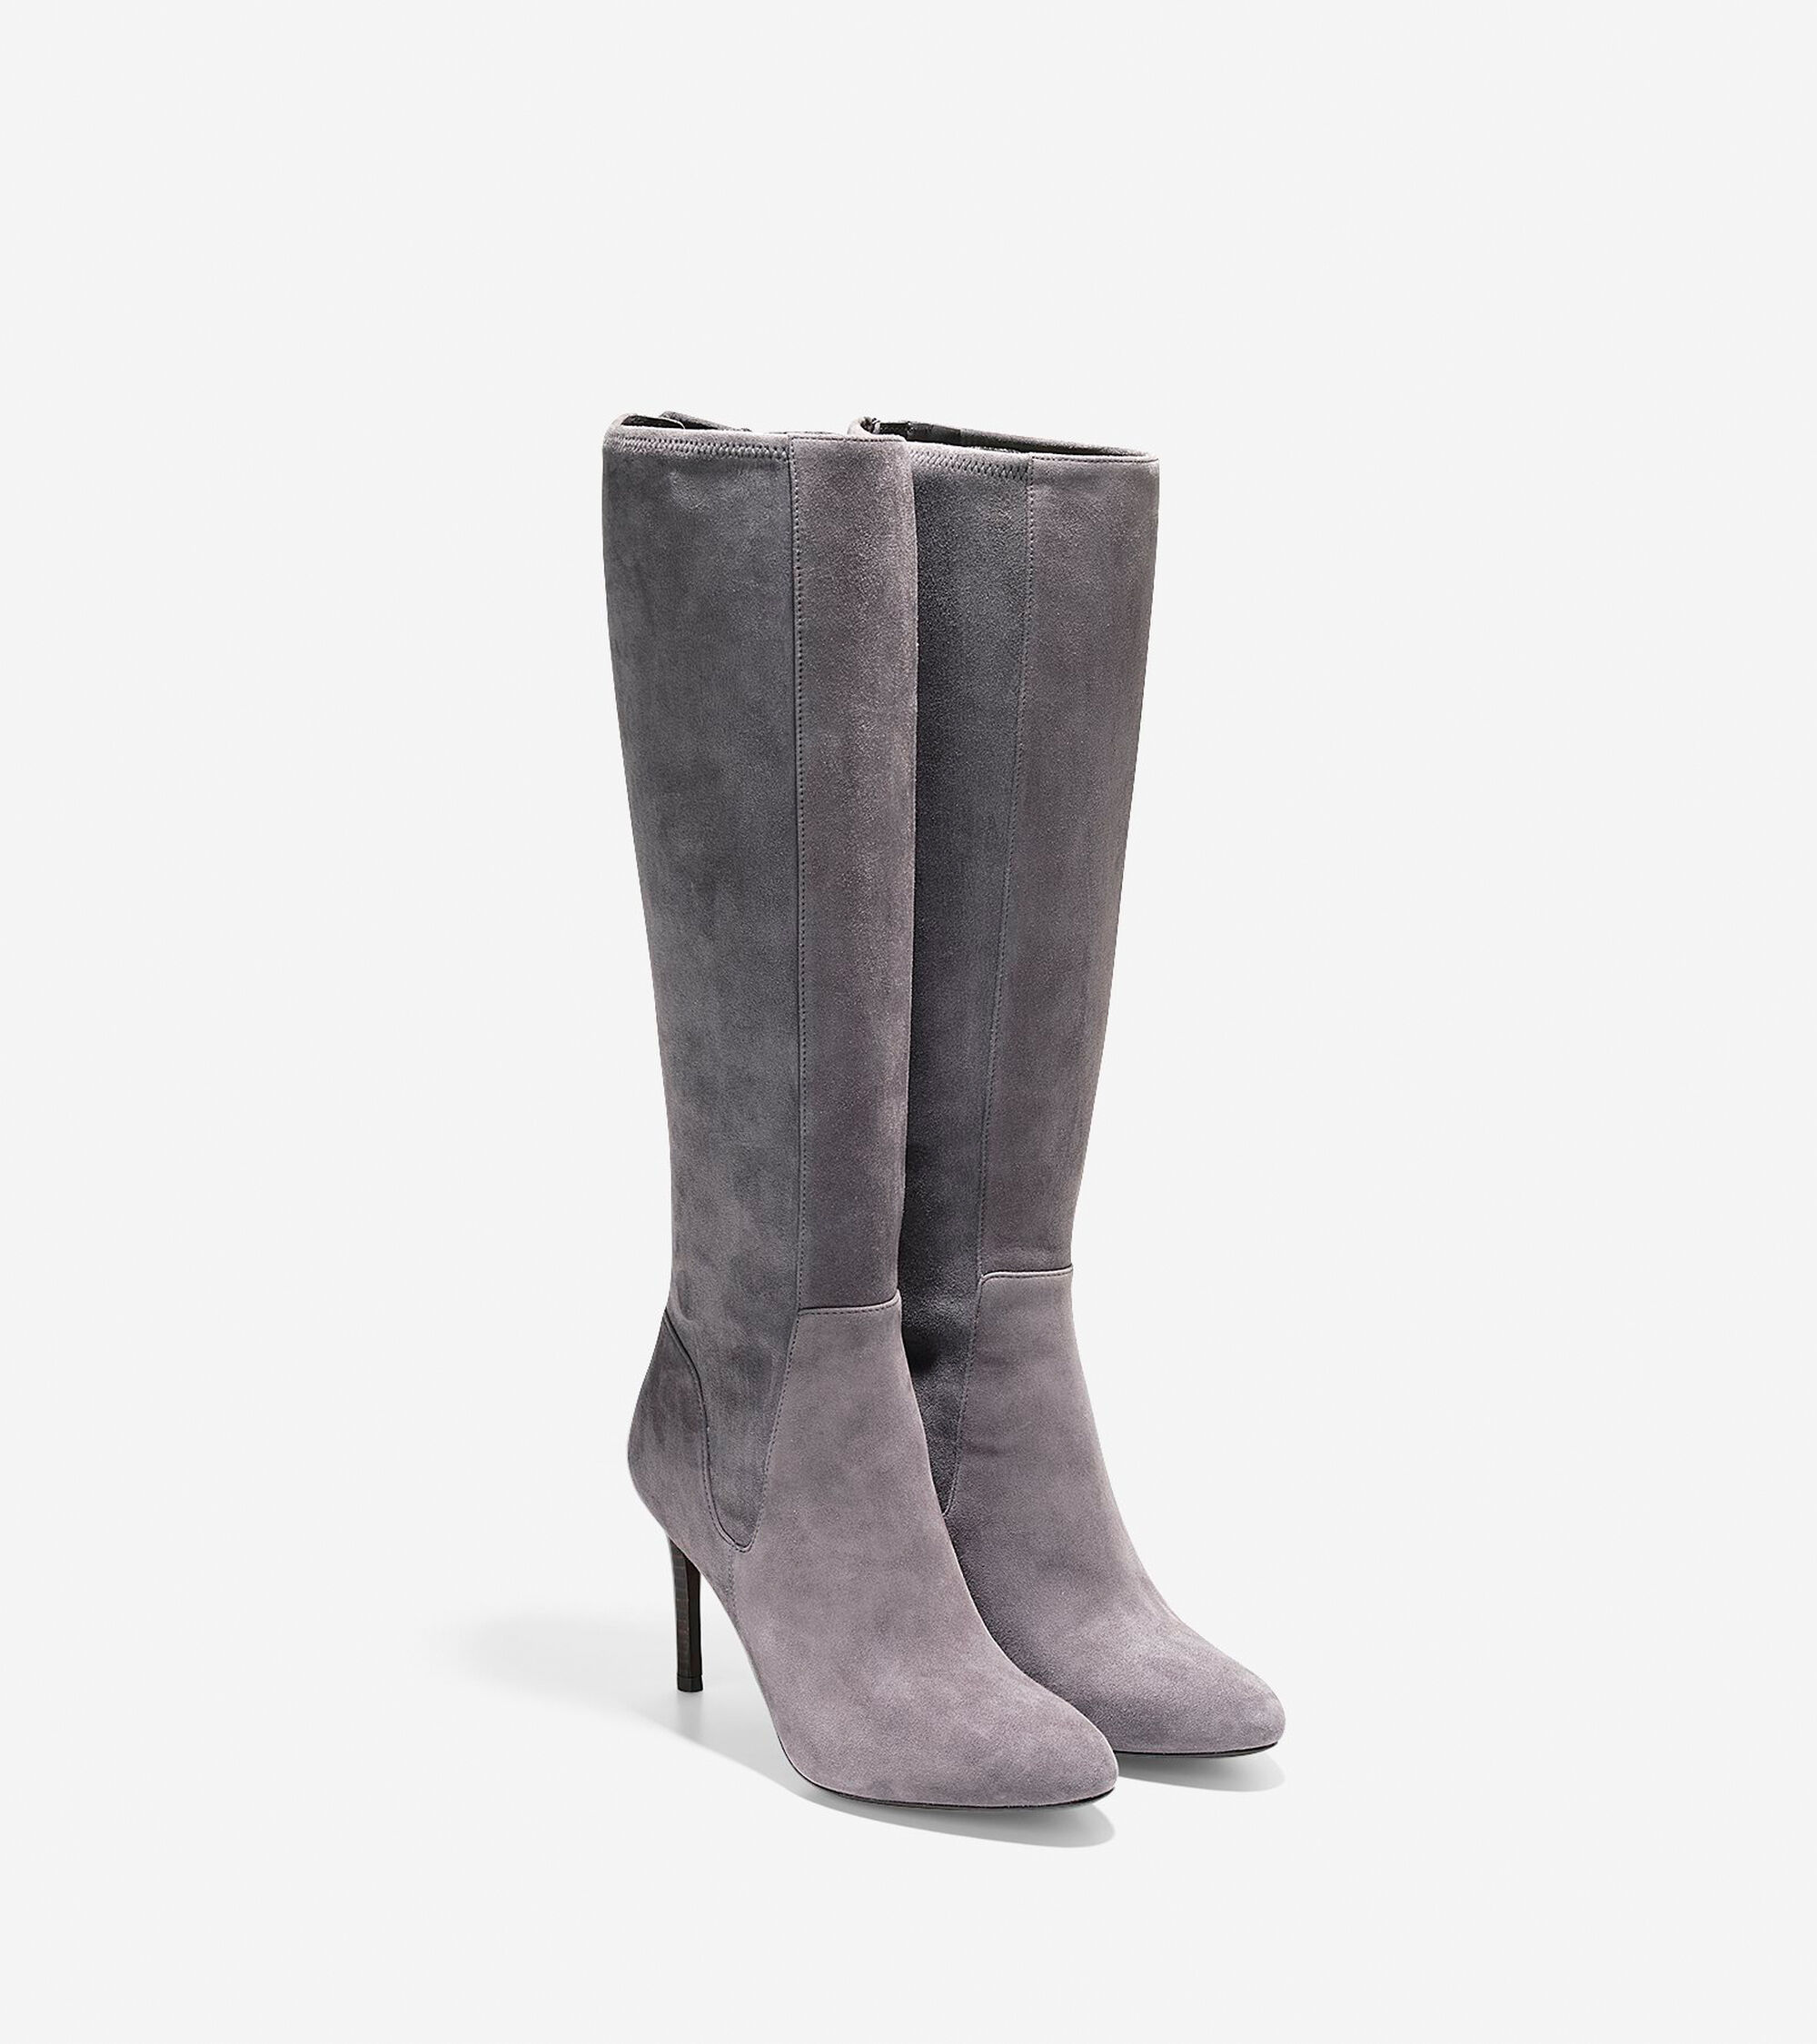 Women\'s Narelle Tall Boots 85mm in Stormcloud | Cole Haan